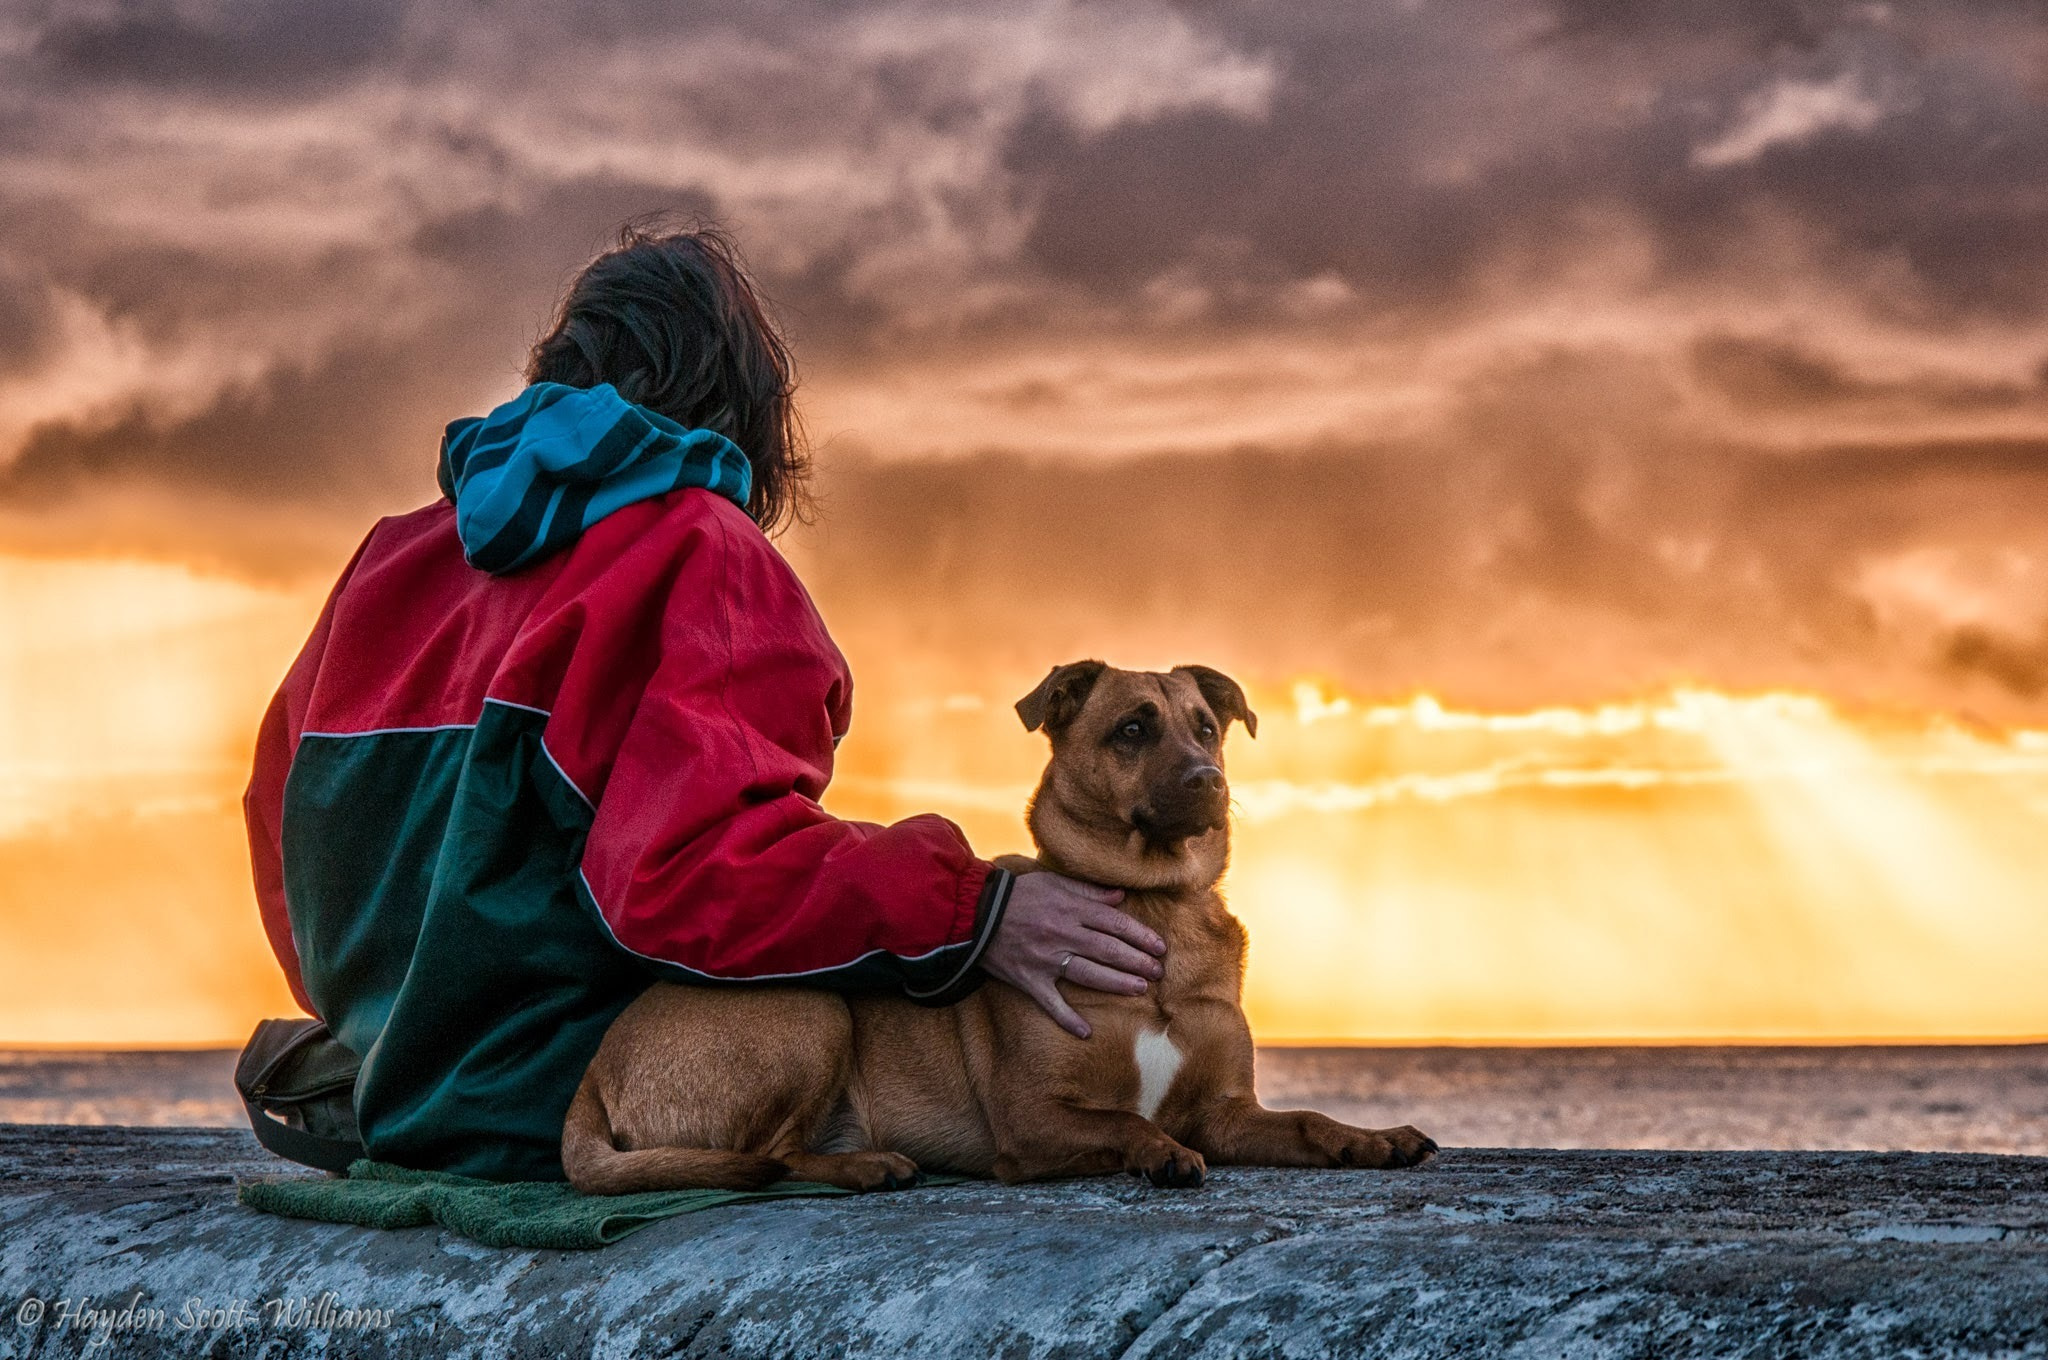 Photograph Companionship by Hayden Scott-Williams on 500px